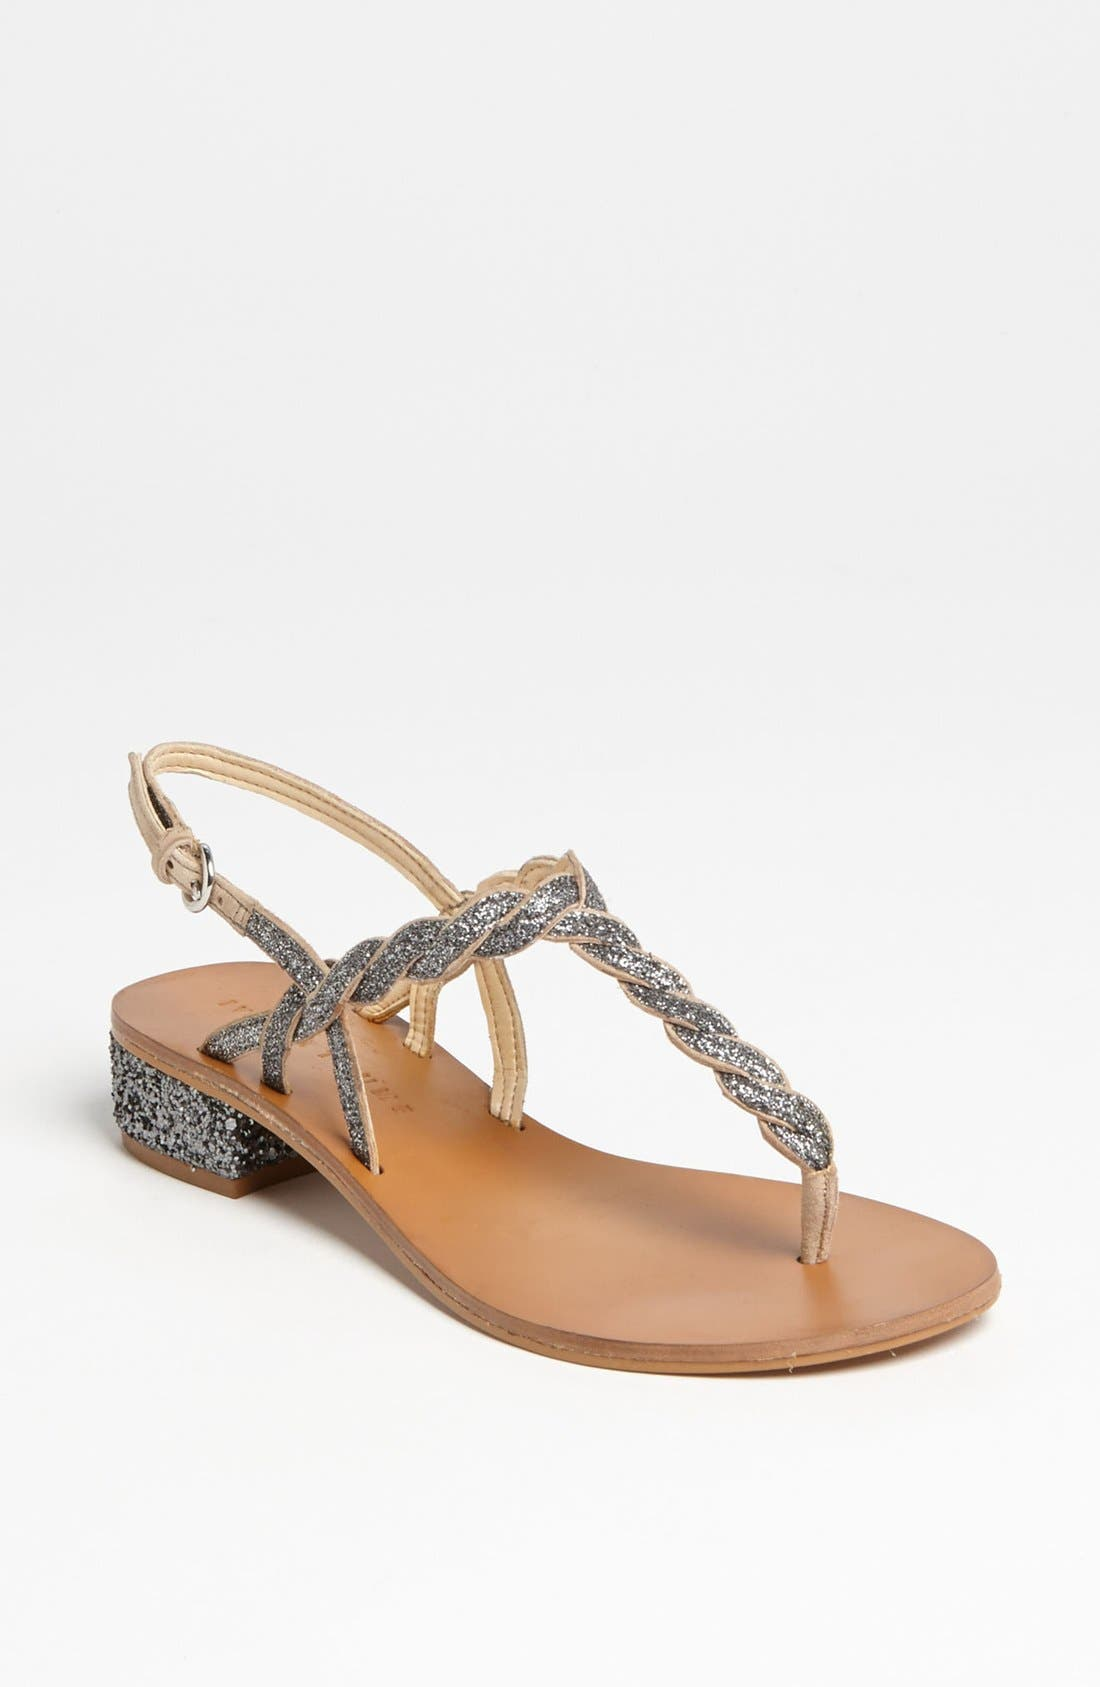 Alternate Image 1 Selected - Ivanka Trump 'Kirby' Sandal